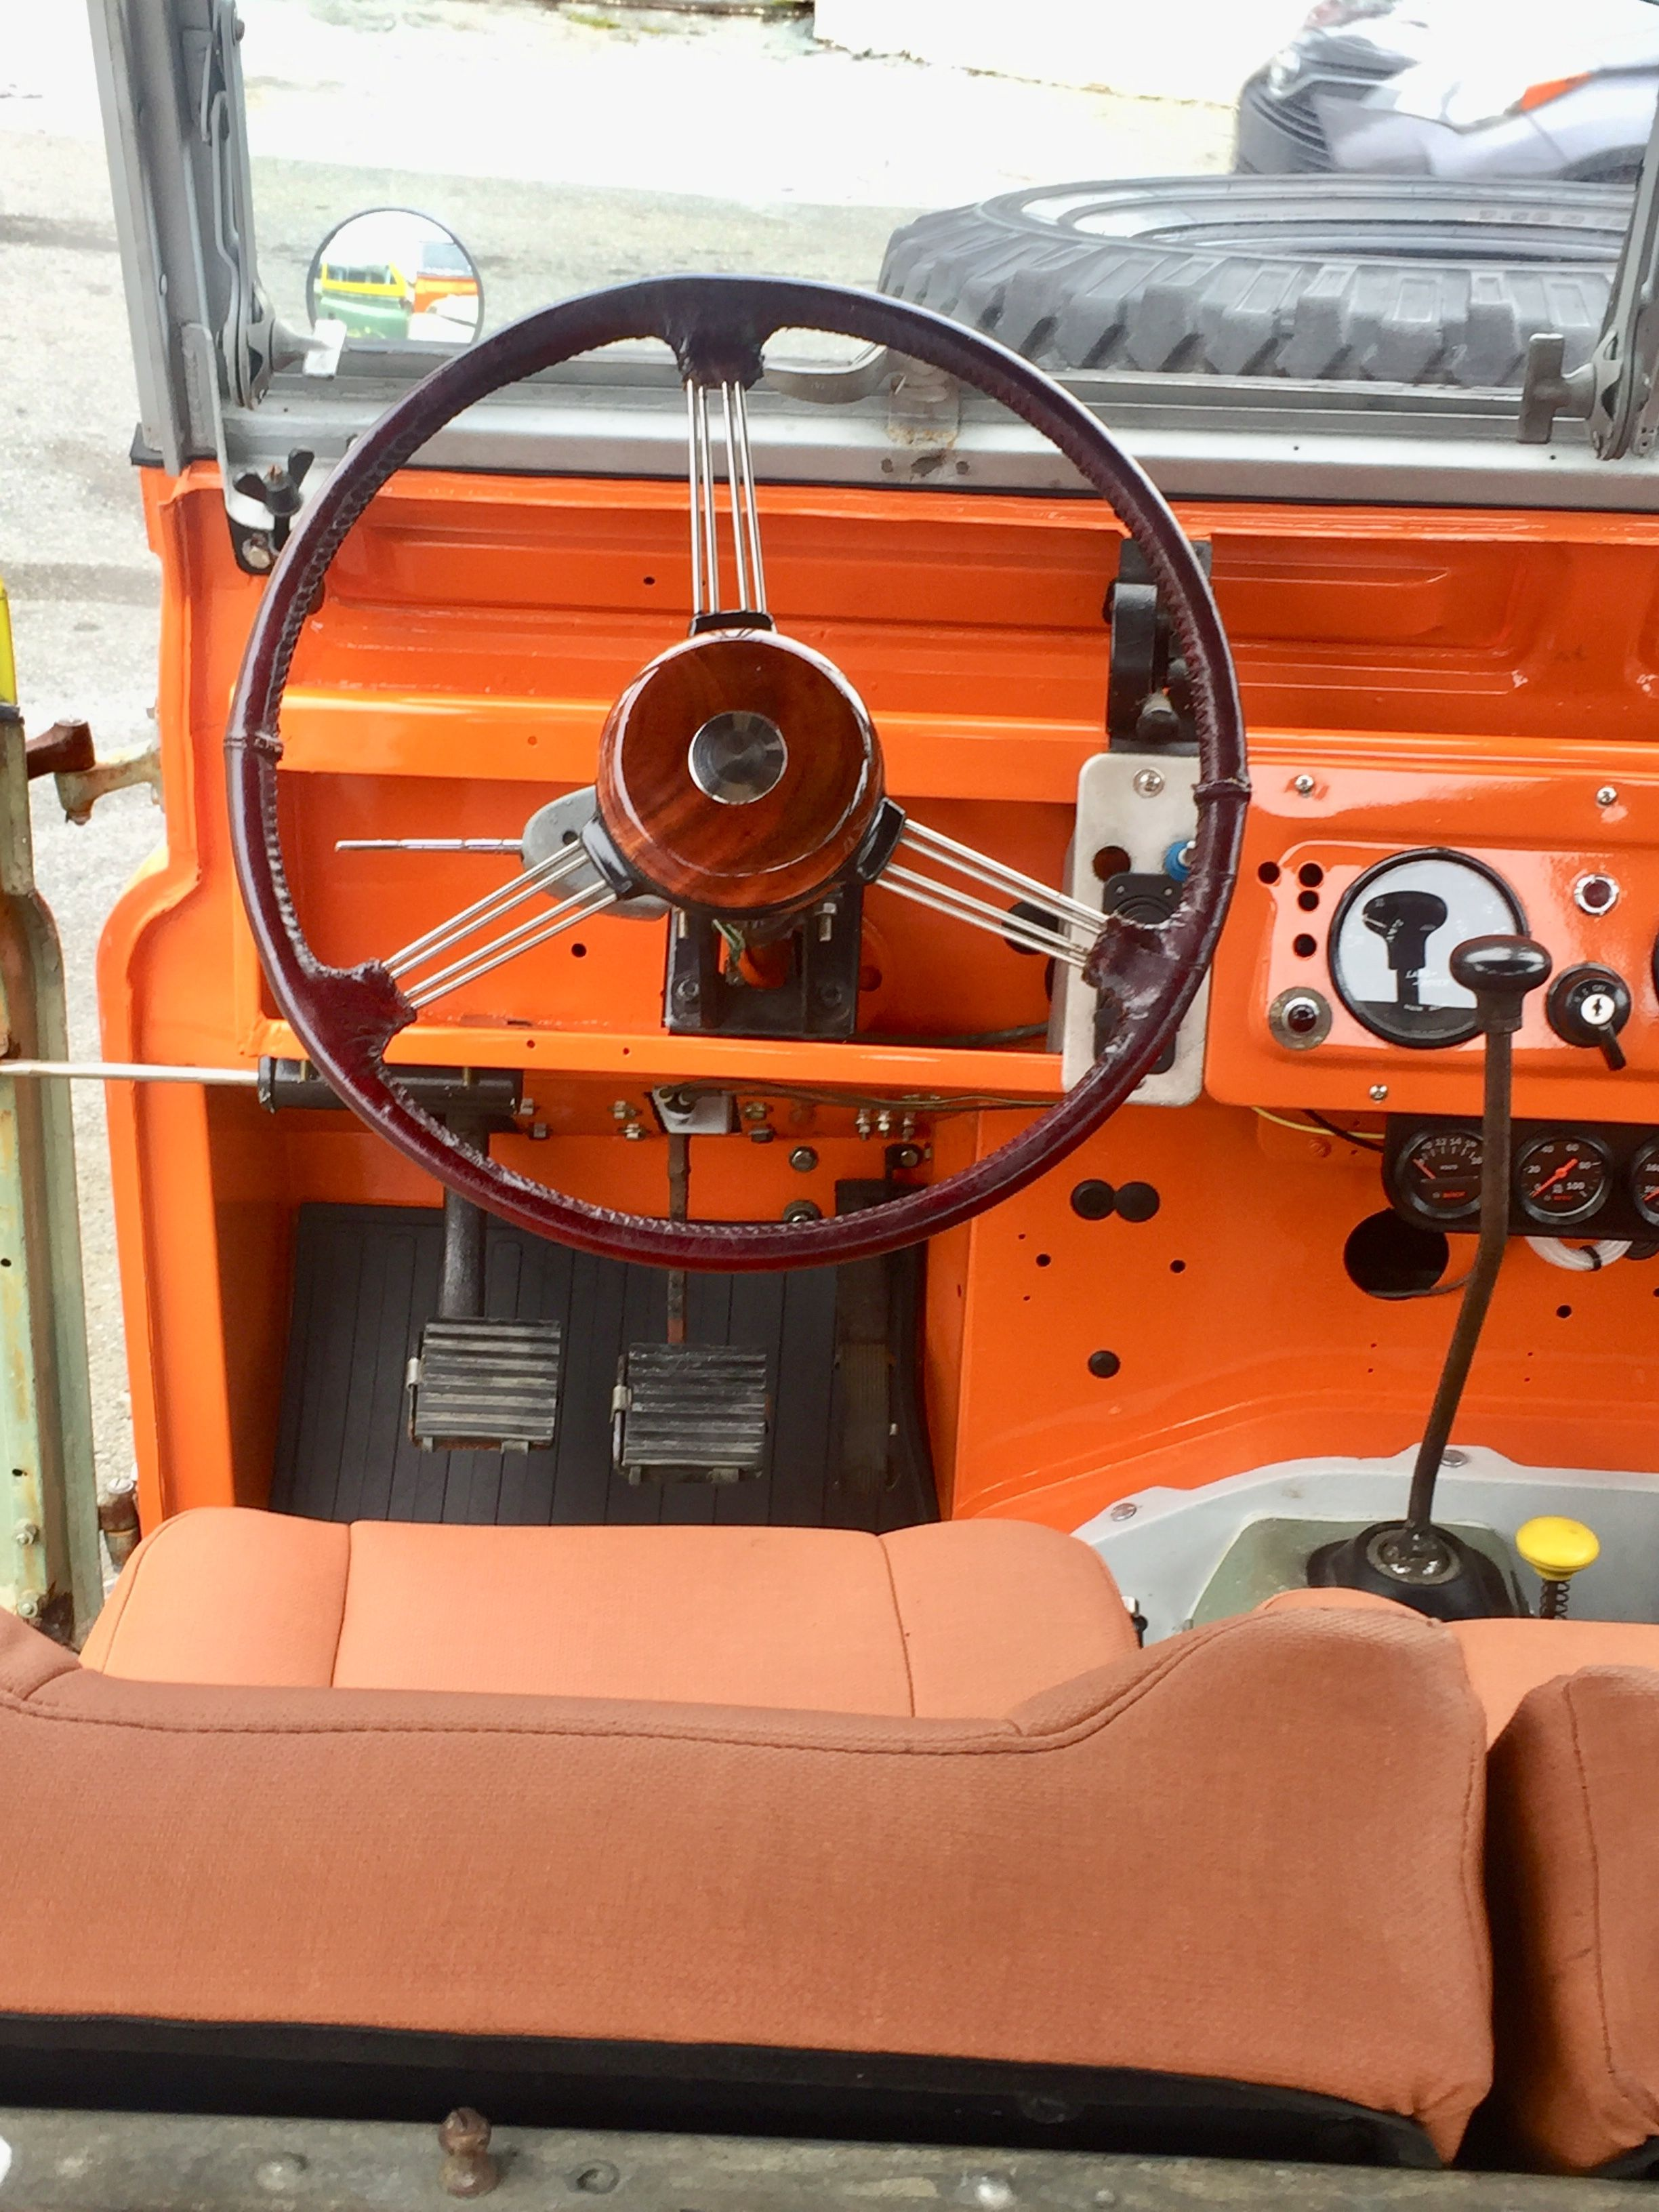 Land Rover Series 2 Steering Wheel Land Rover Series Land Rover Land Rover Defender